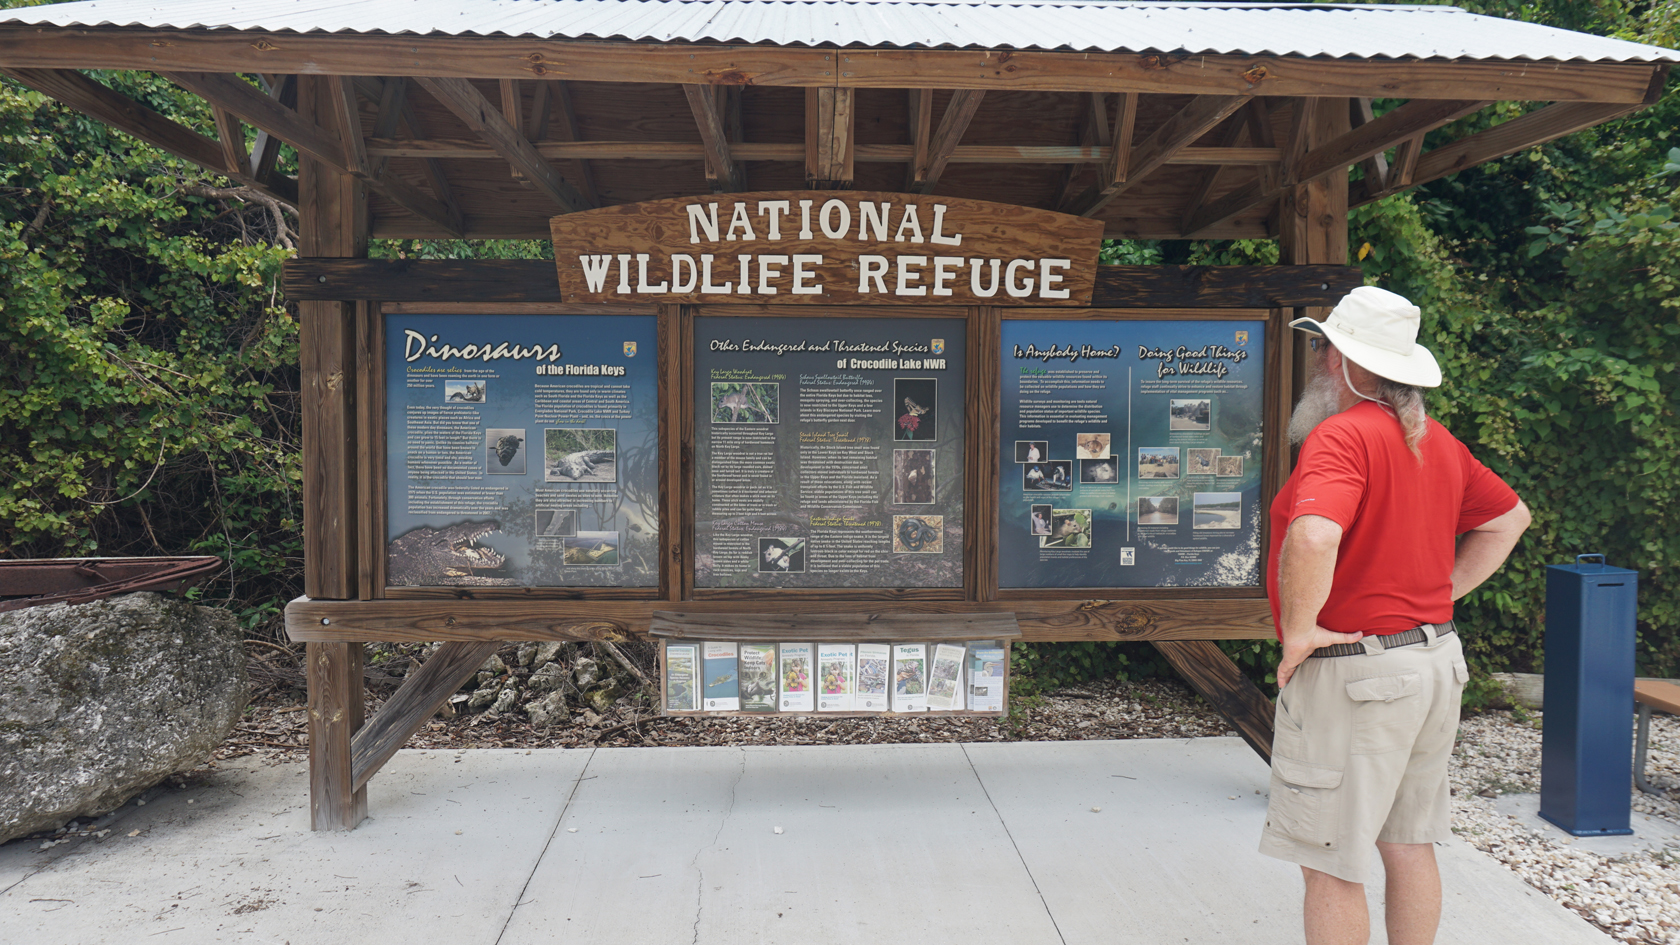 Informational kiosk at Crocodile Lake NWR